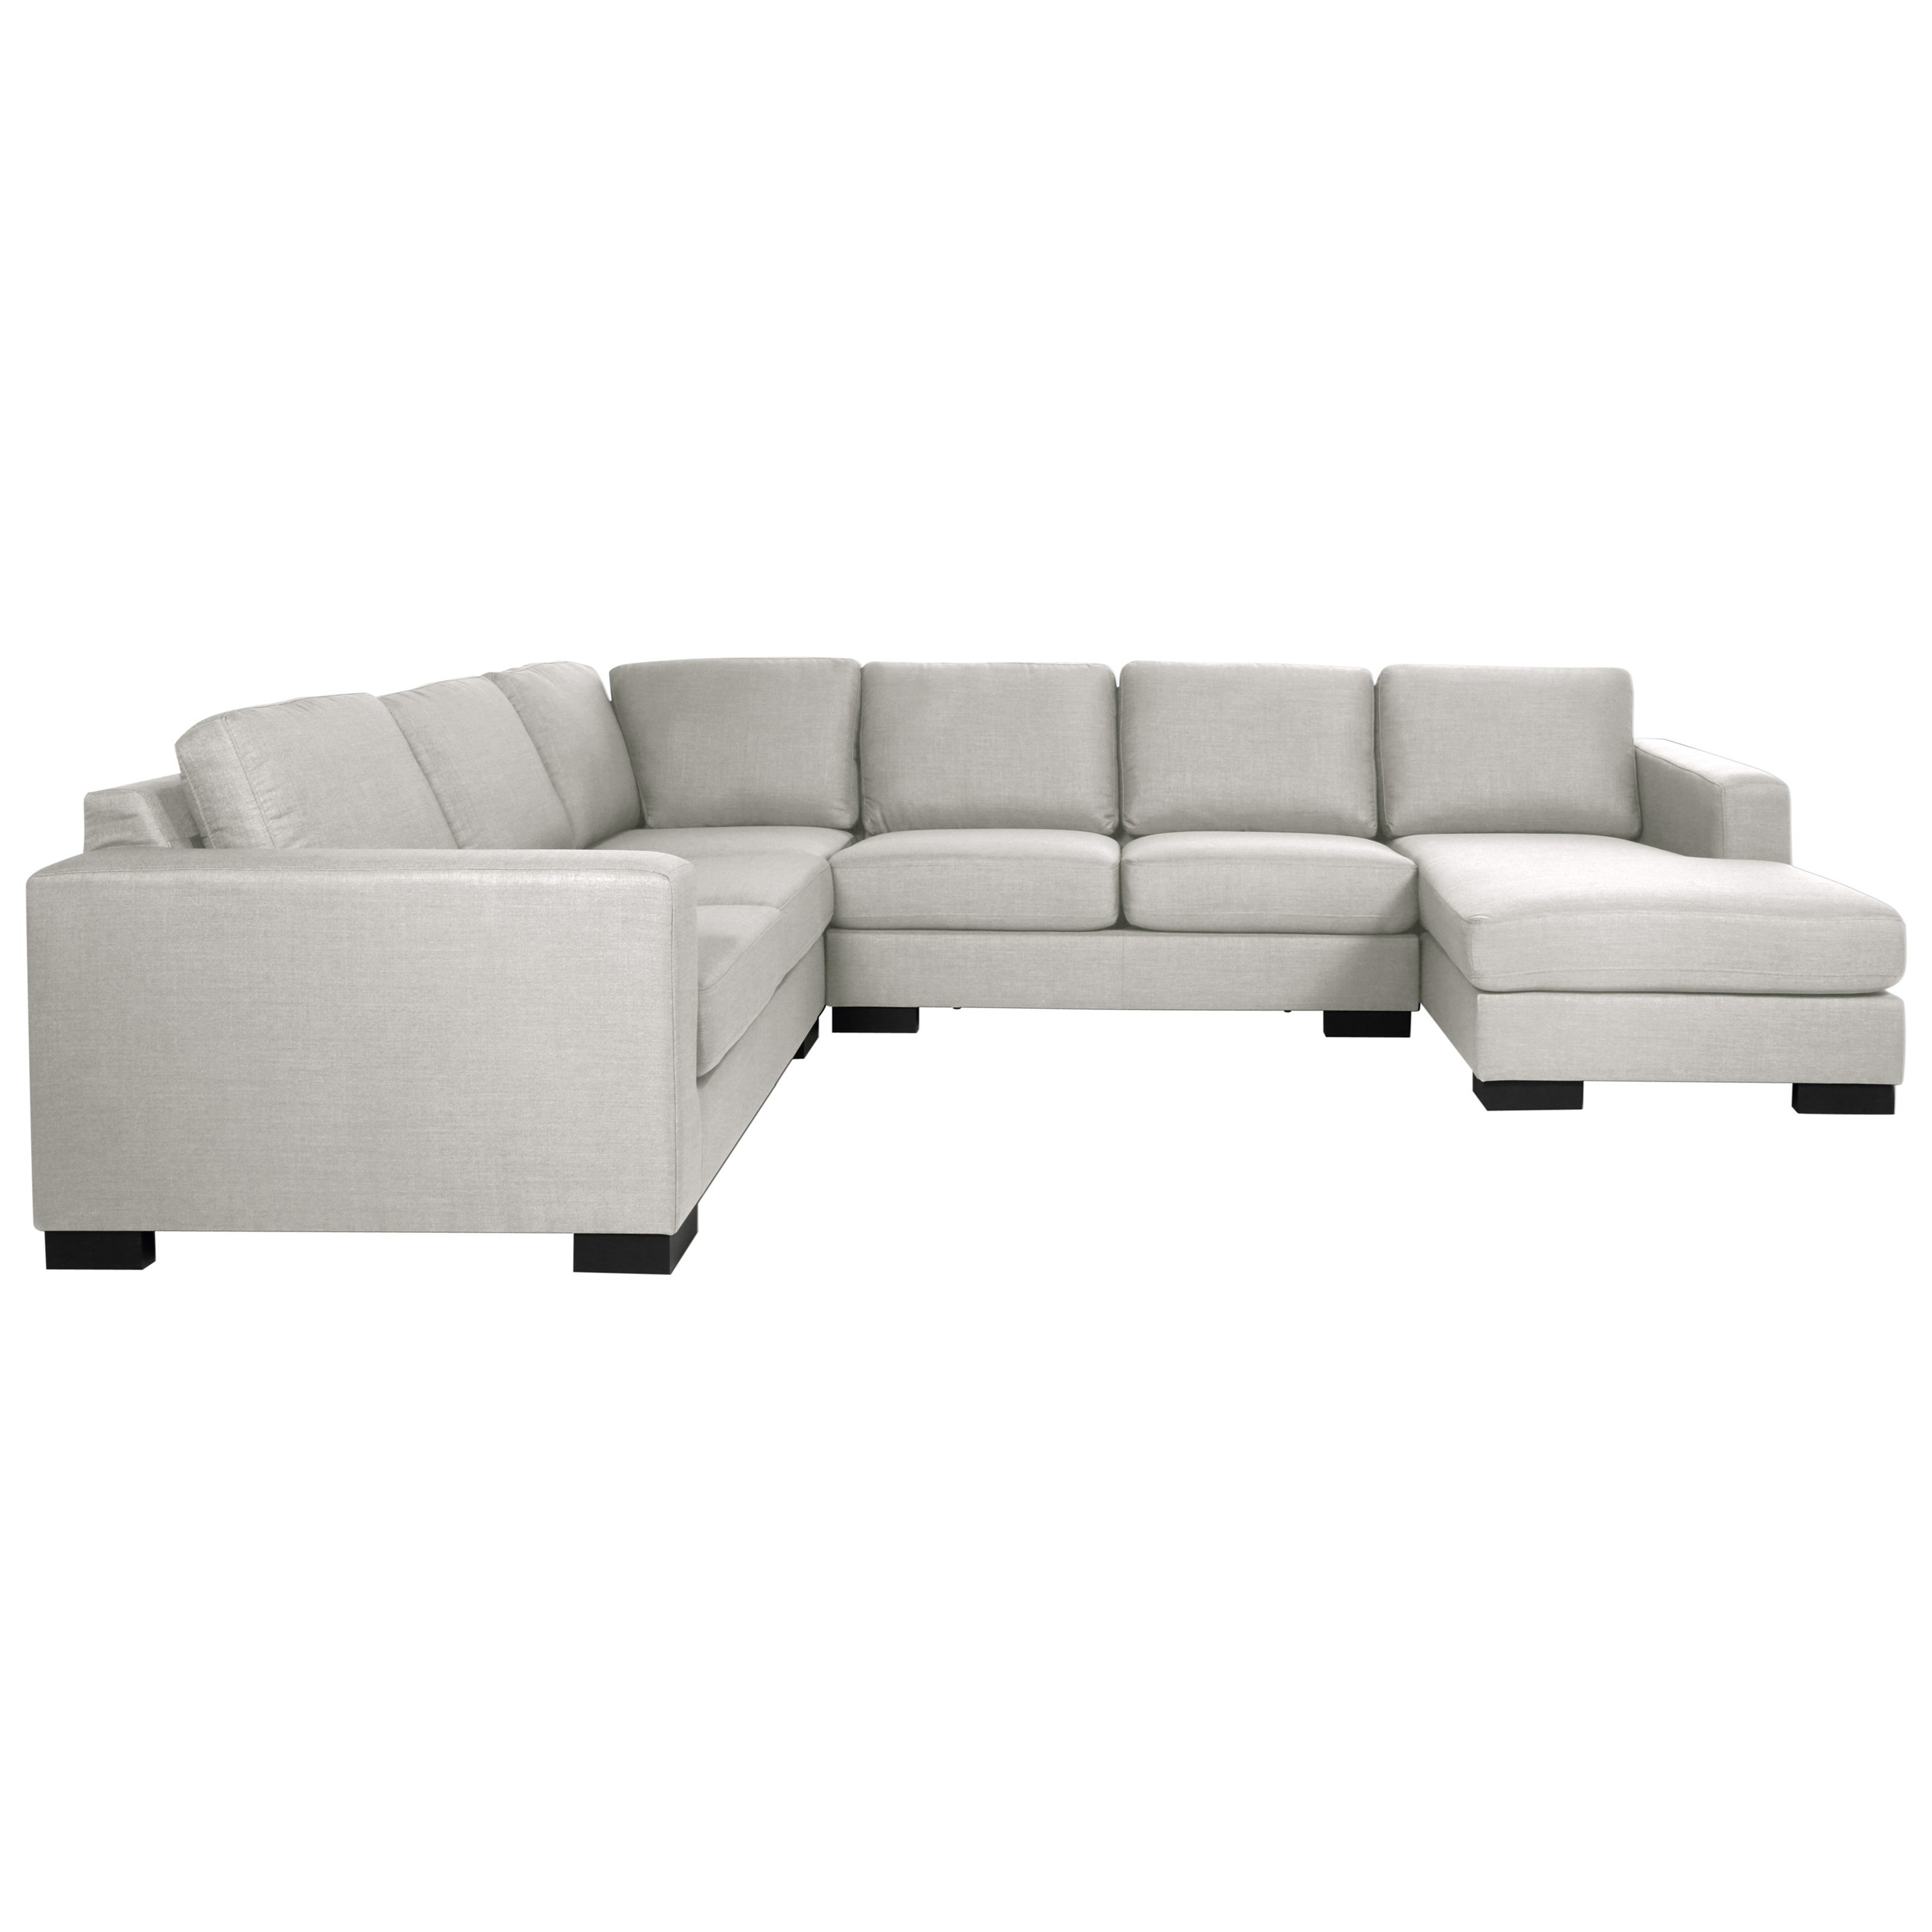 Actona Company Canterbury Sectional  - Item Number: H000013640-Chile Sand